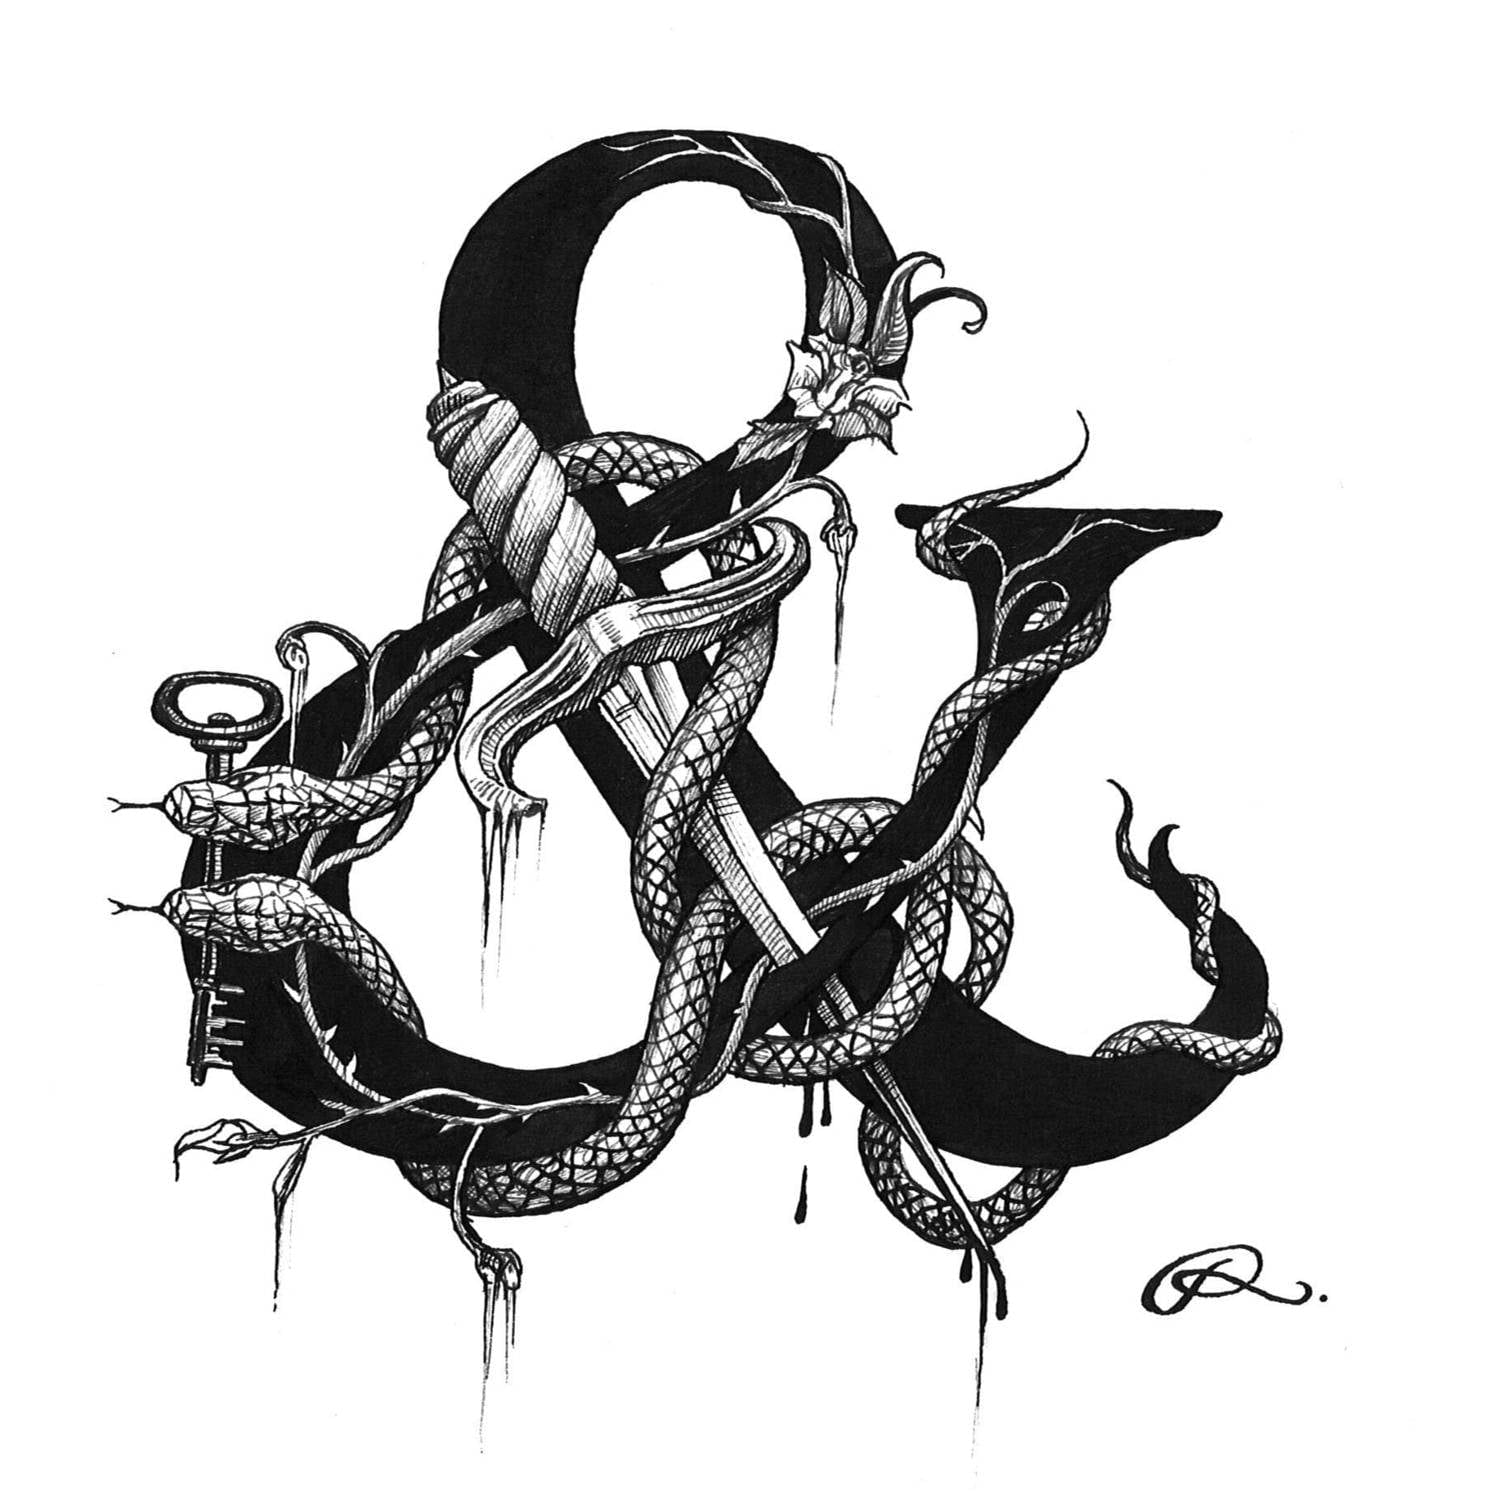 & - Ampersand Intricate Ink Print-0